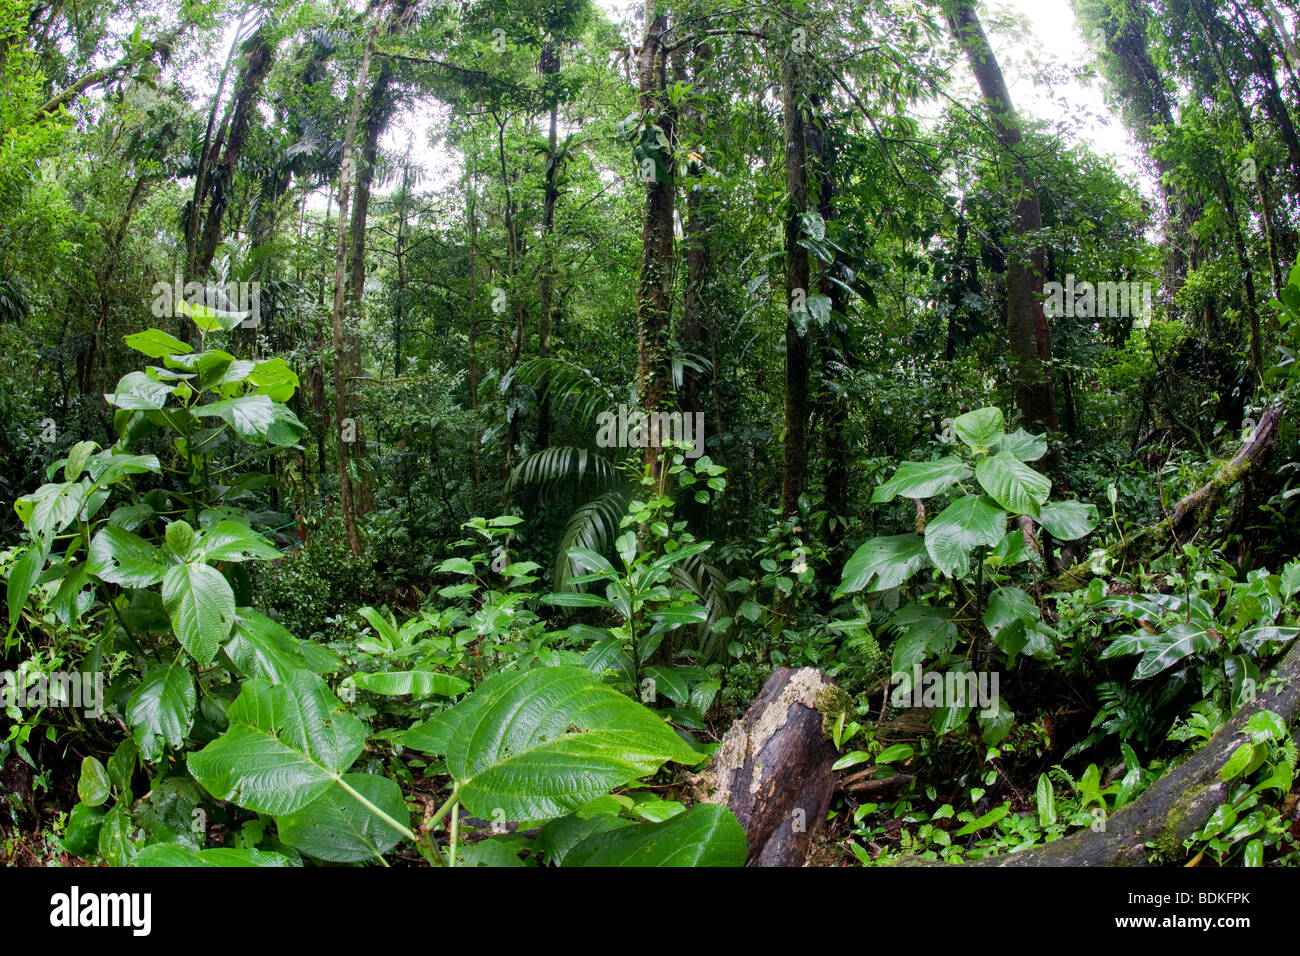 Costa Rica Rainforest - Stock Image